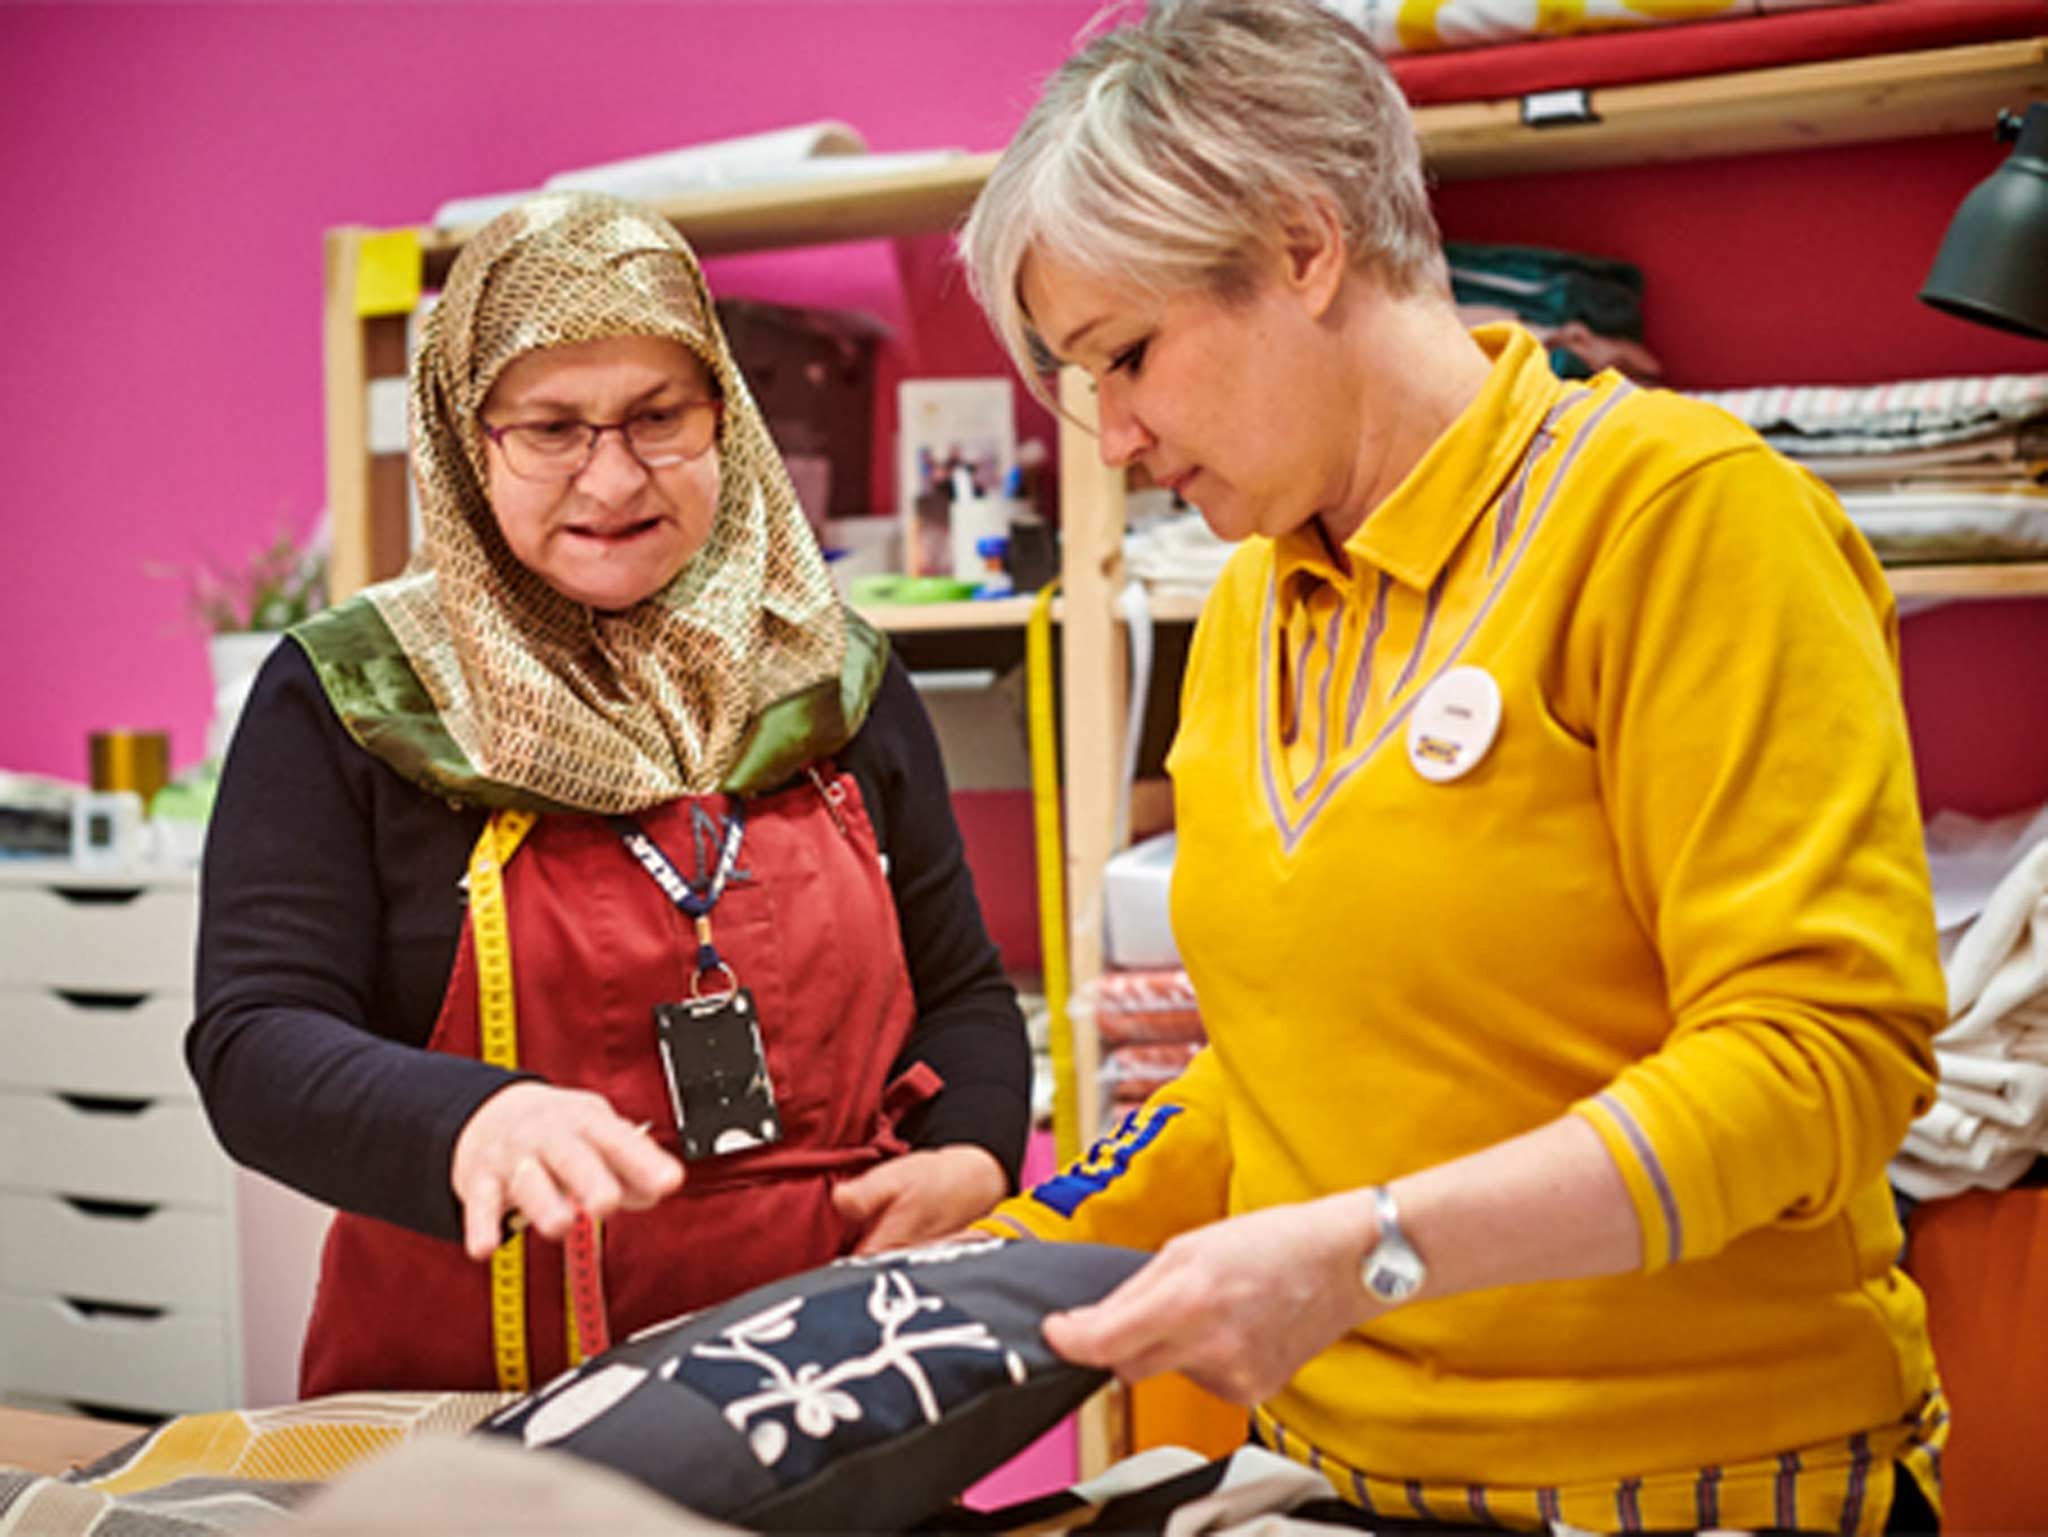 Yalla Trappan is a social initiative providing sewing service in the IKEA Malmö store, Sweden. Neire Kerimovska and Karin Wingren talk about a cushion cover.